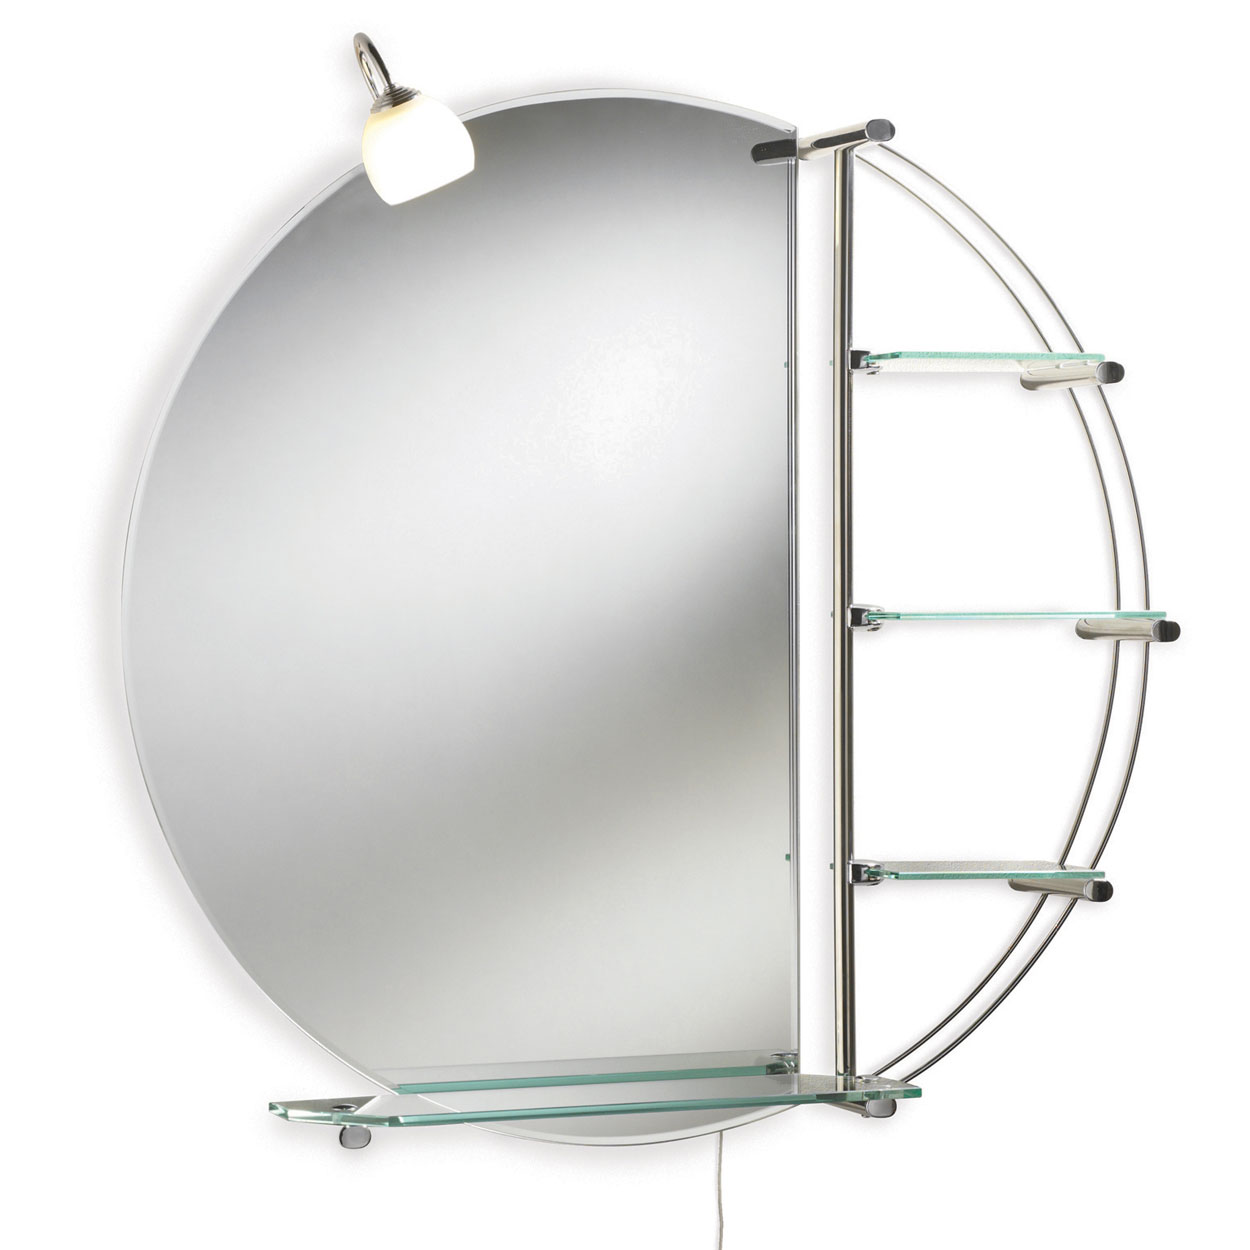 Premier Magnum Bathroom Mirror with Shelf, 800mm High x 800mm Wide, Stainless Steel